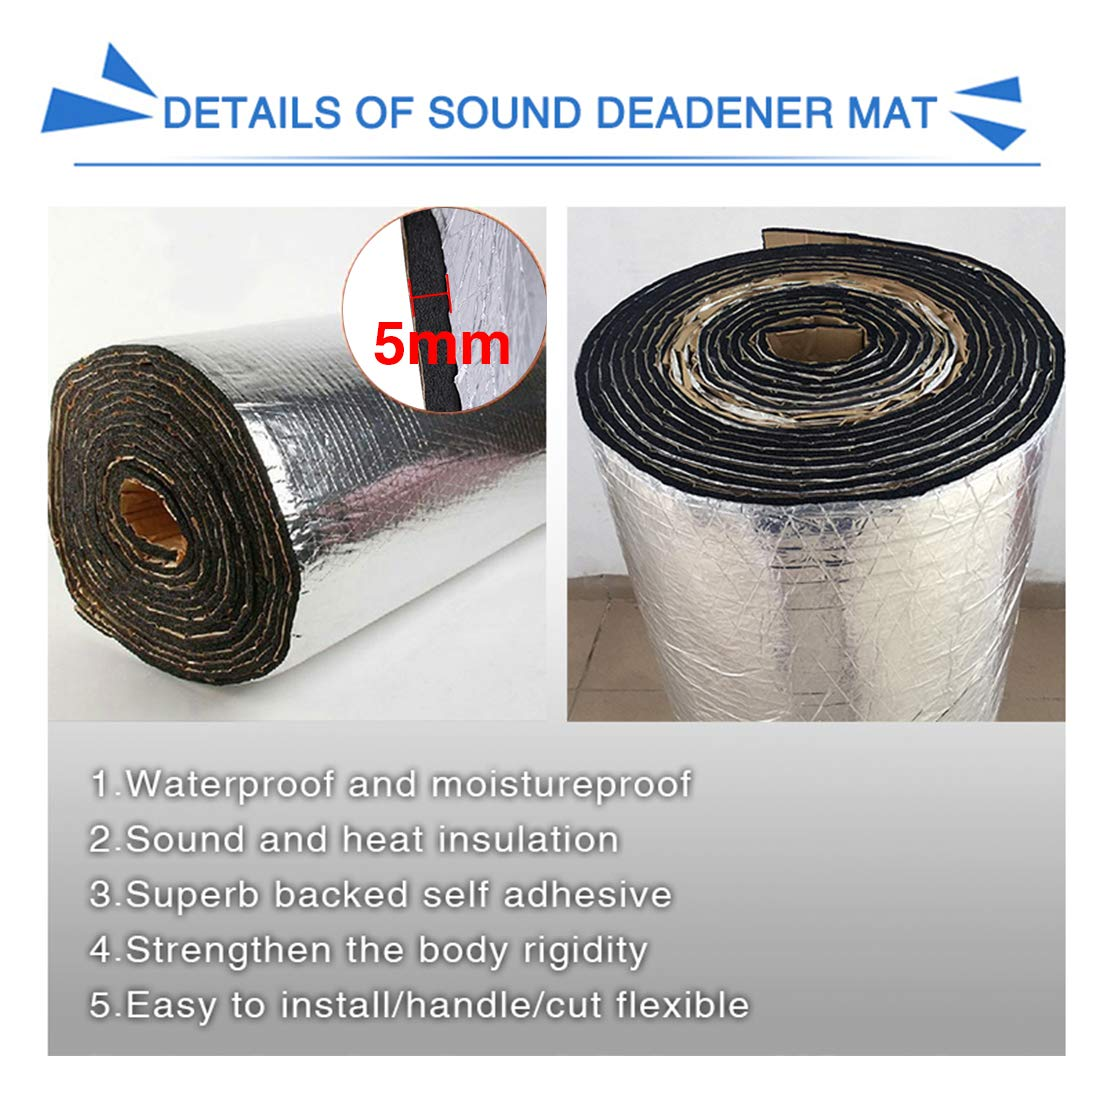 uxcell 197mil 5mm 53.35sqft Heat Sound Deadener Insulation Mat for Car 197 inches x 39 inches